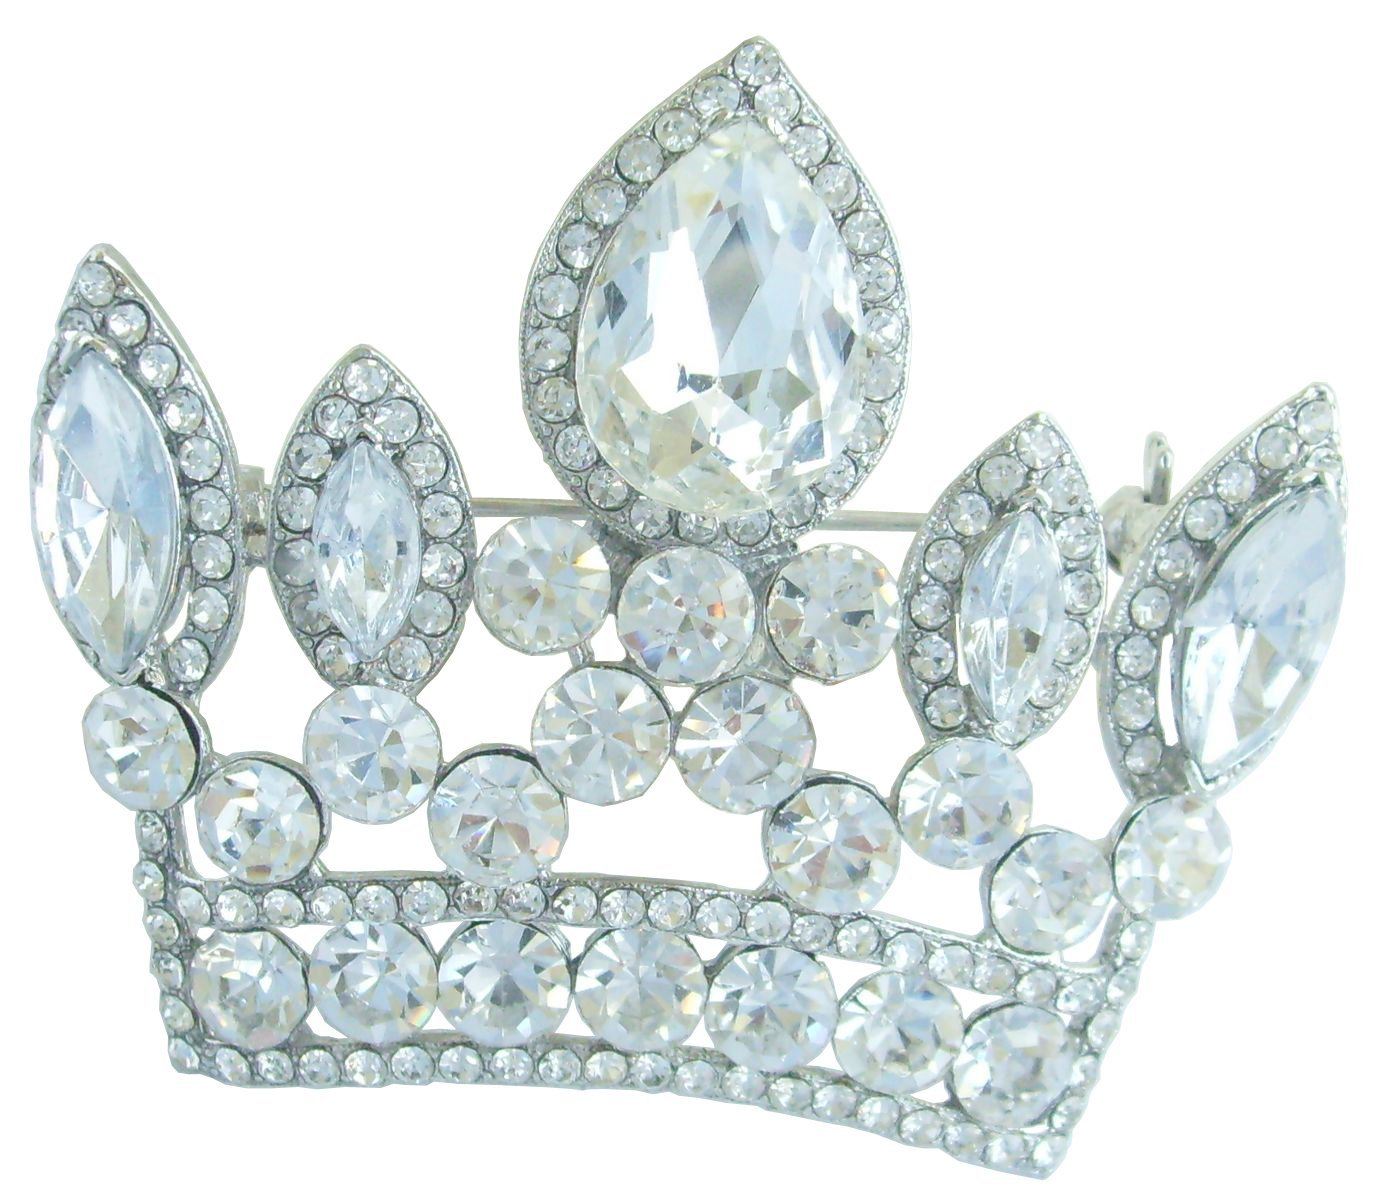 Sindary Classic 2.56'' Crown Brooch Pin Pendant Austrian Crystal BZ5050 (Silver-Tone Clear)